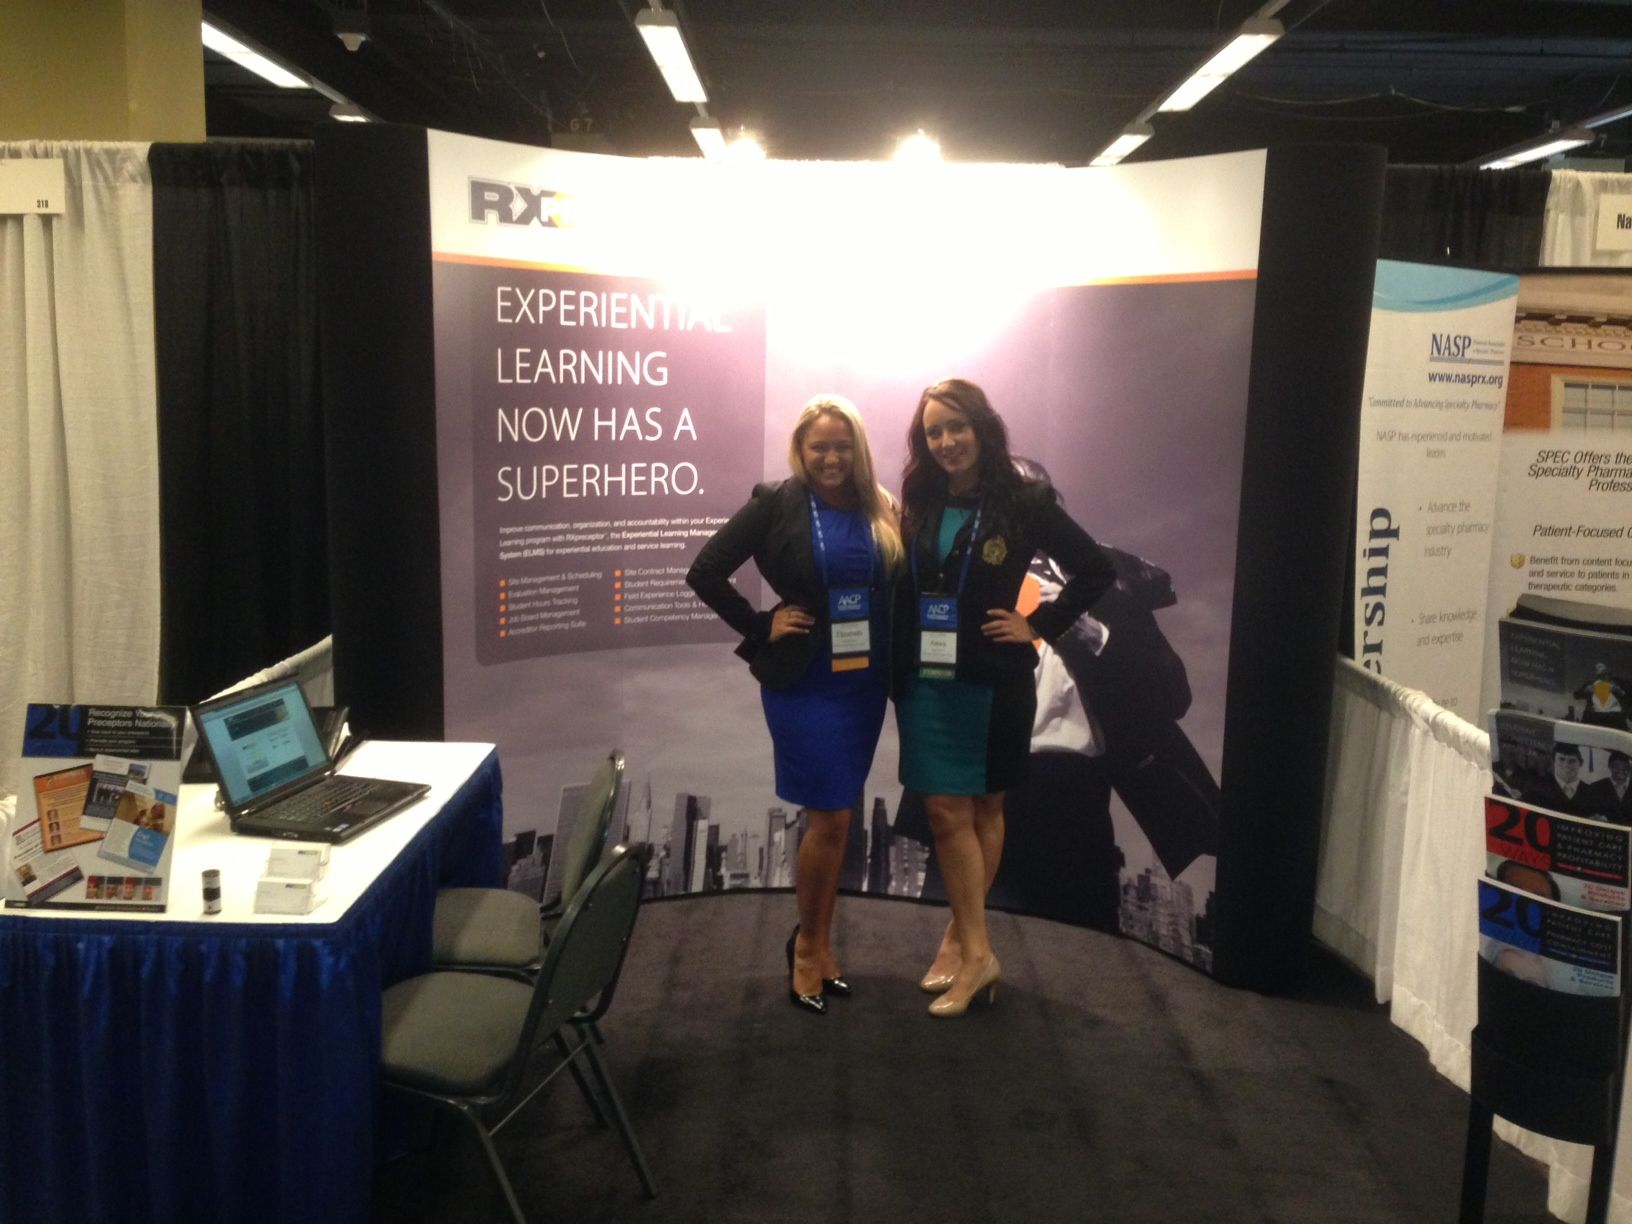 AACP 2013 Annual Conference. RXpreceptor Booth 320